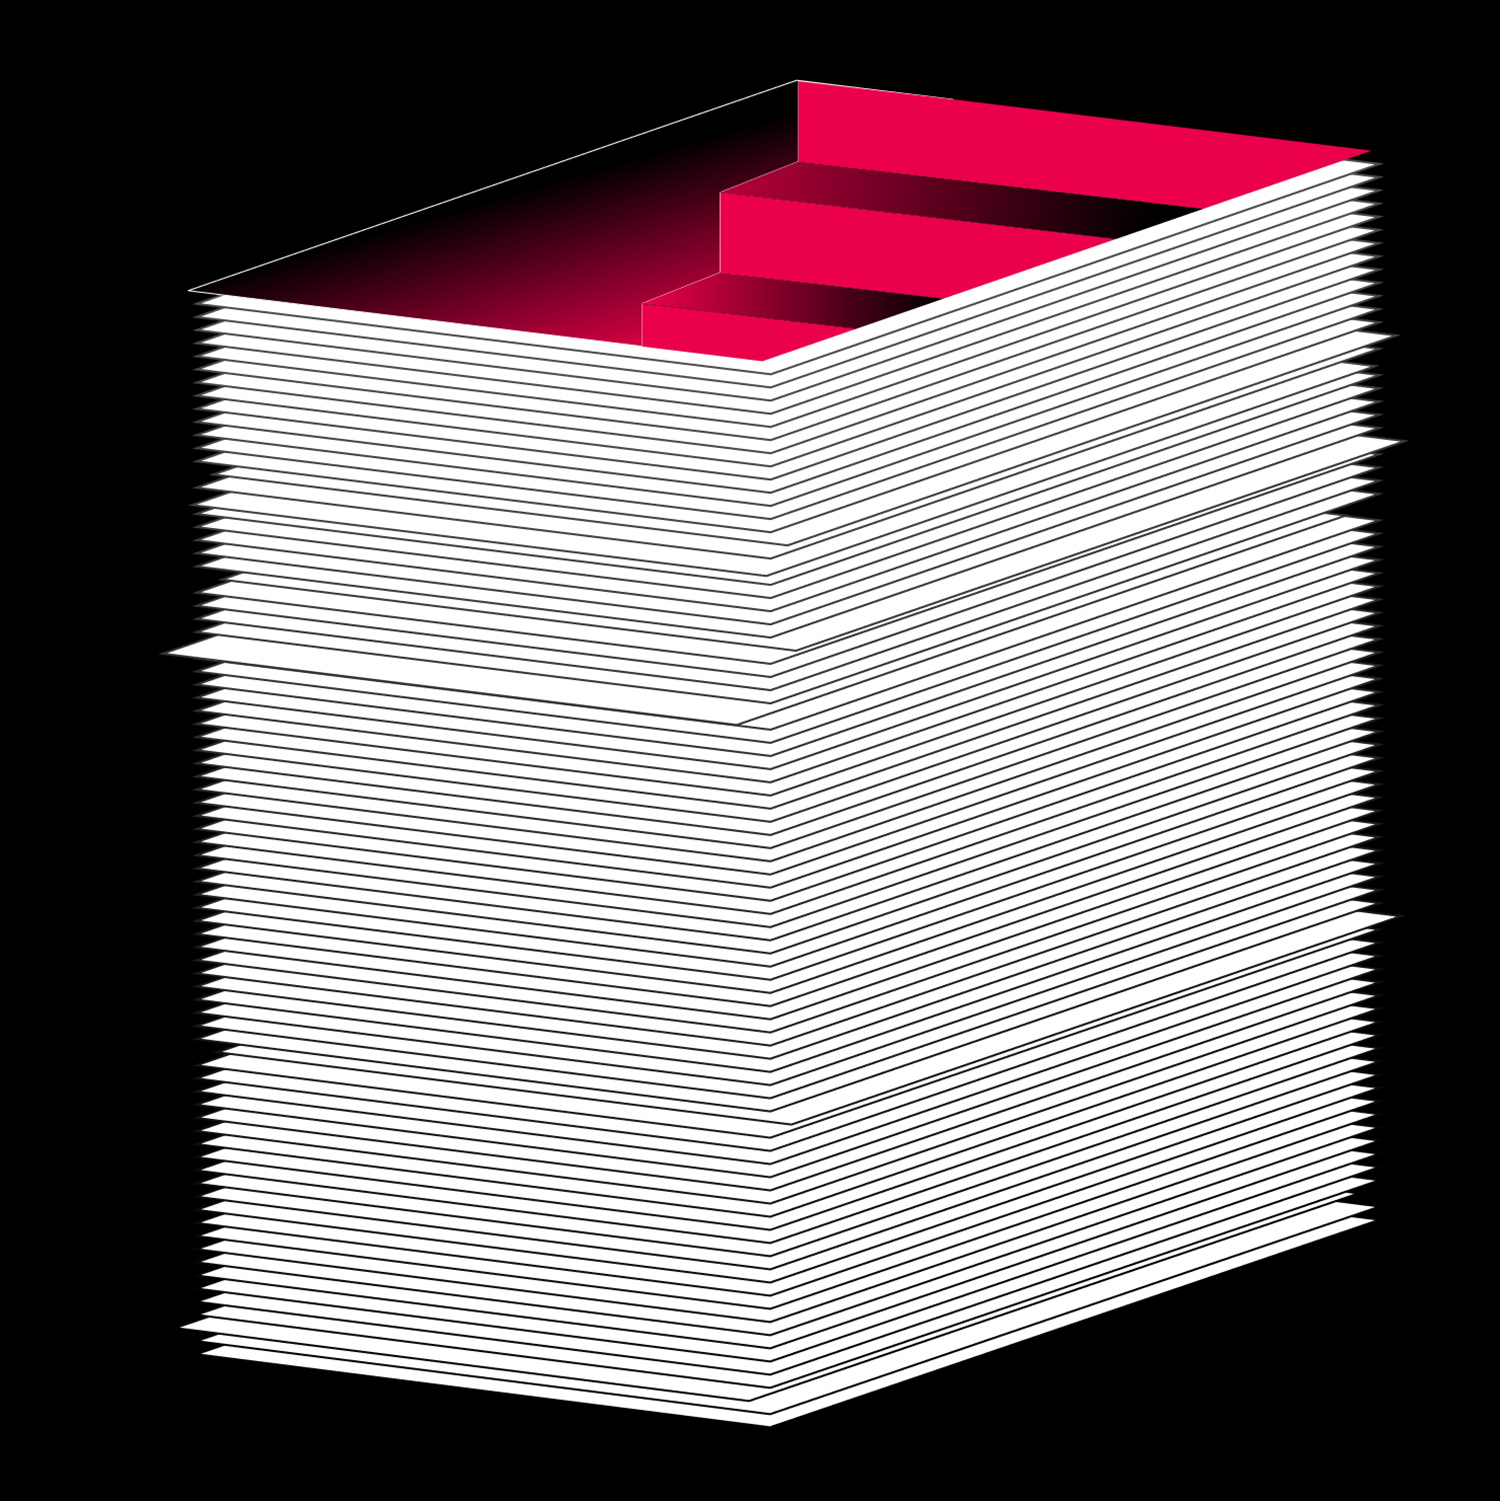 Illustration with black background and a red ominous staircase ascending out of a stack of white paper.